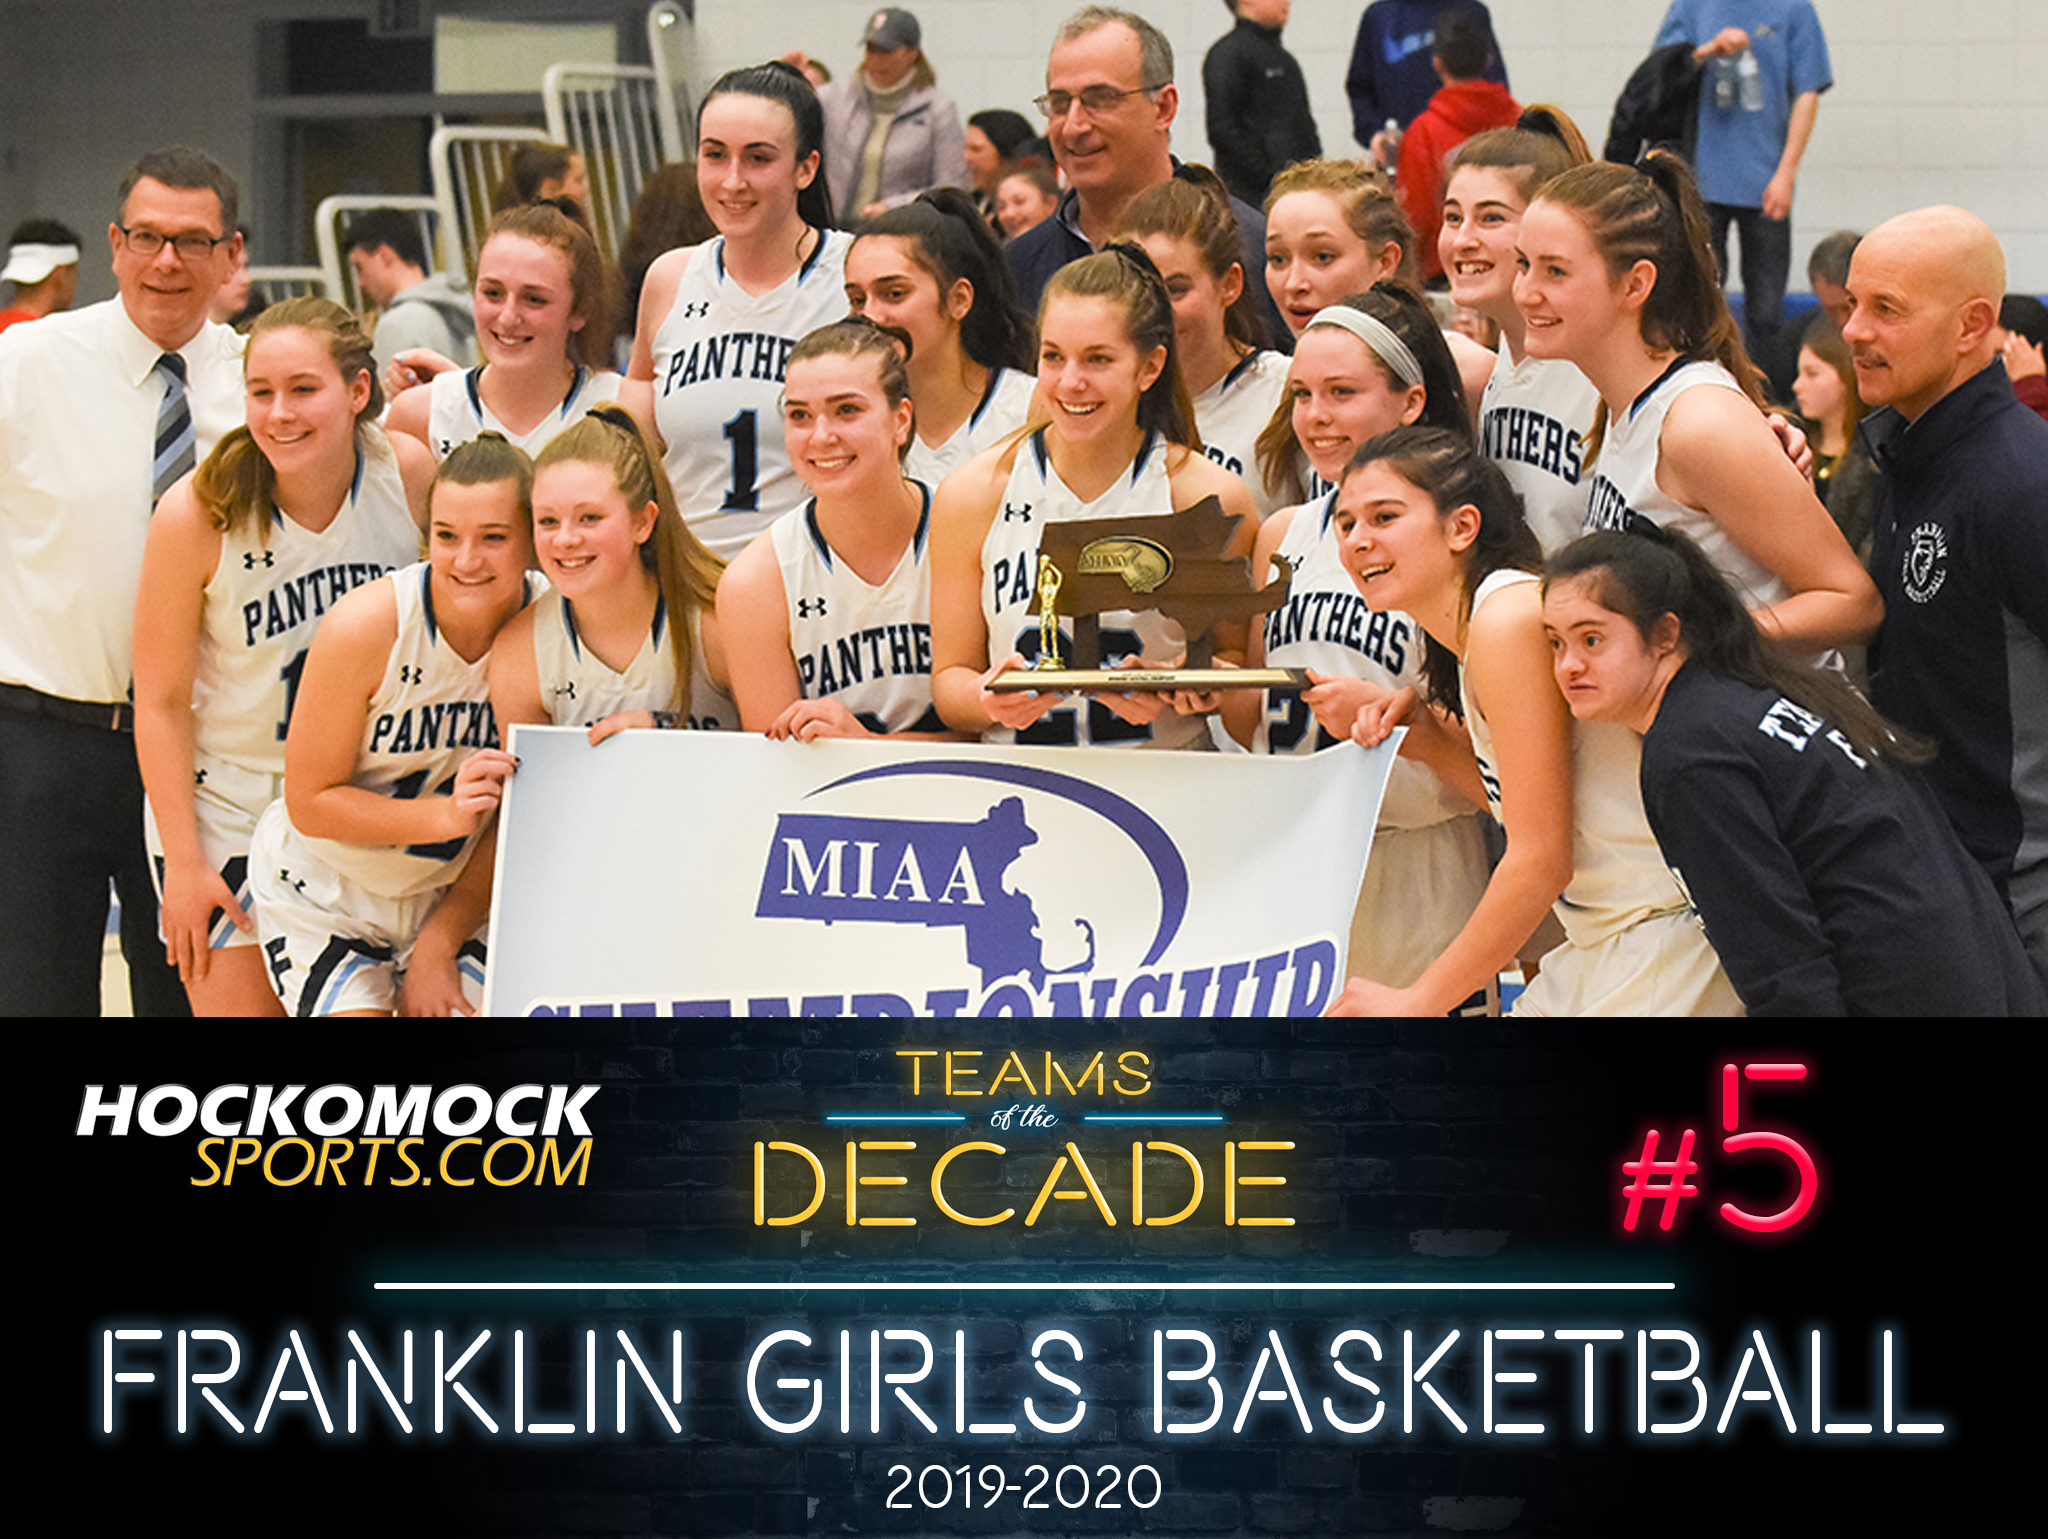 HockomockSports.com: Teams of the Decade #5: 2020 Franklin Girls Basketball